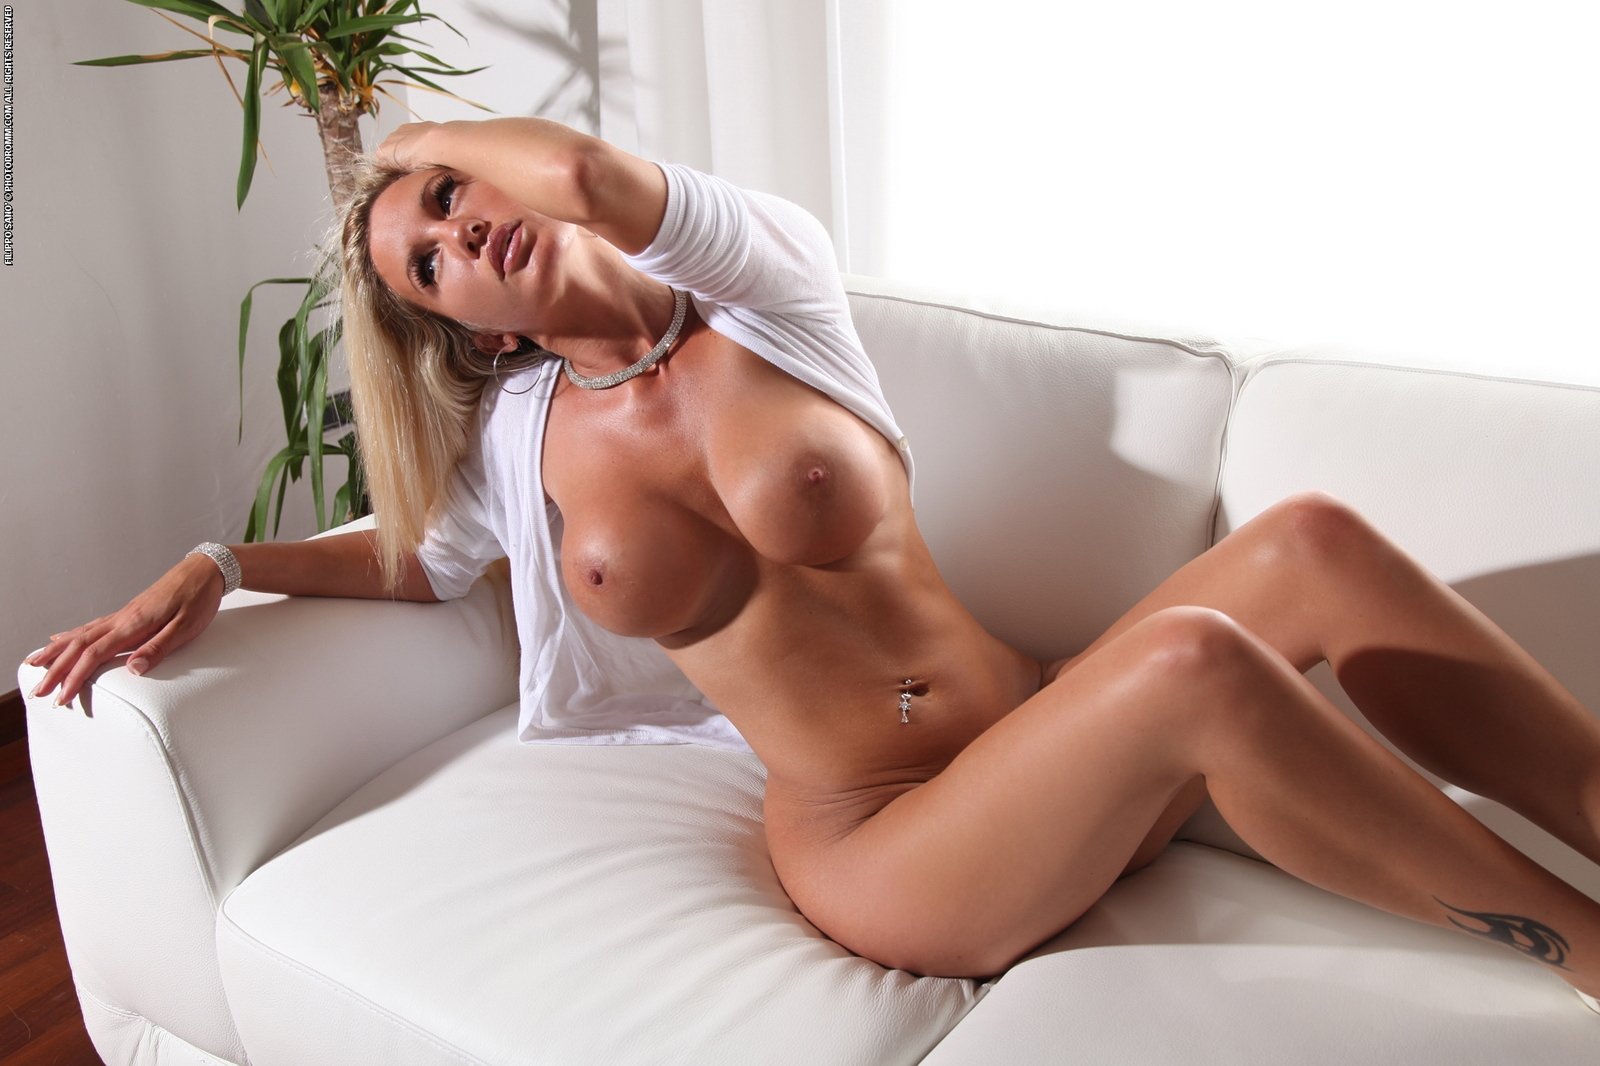 janine-naked-on-couch-busty-blonde-photodromm-11